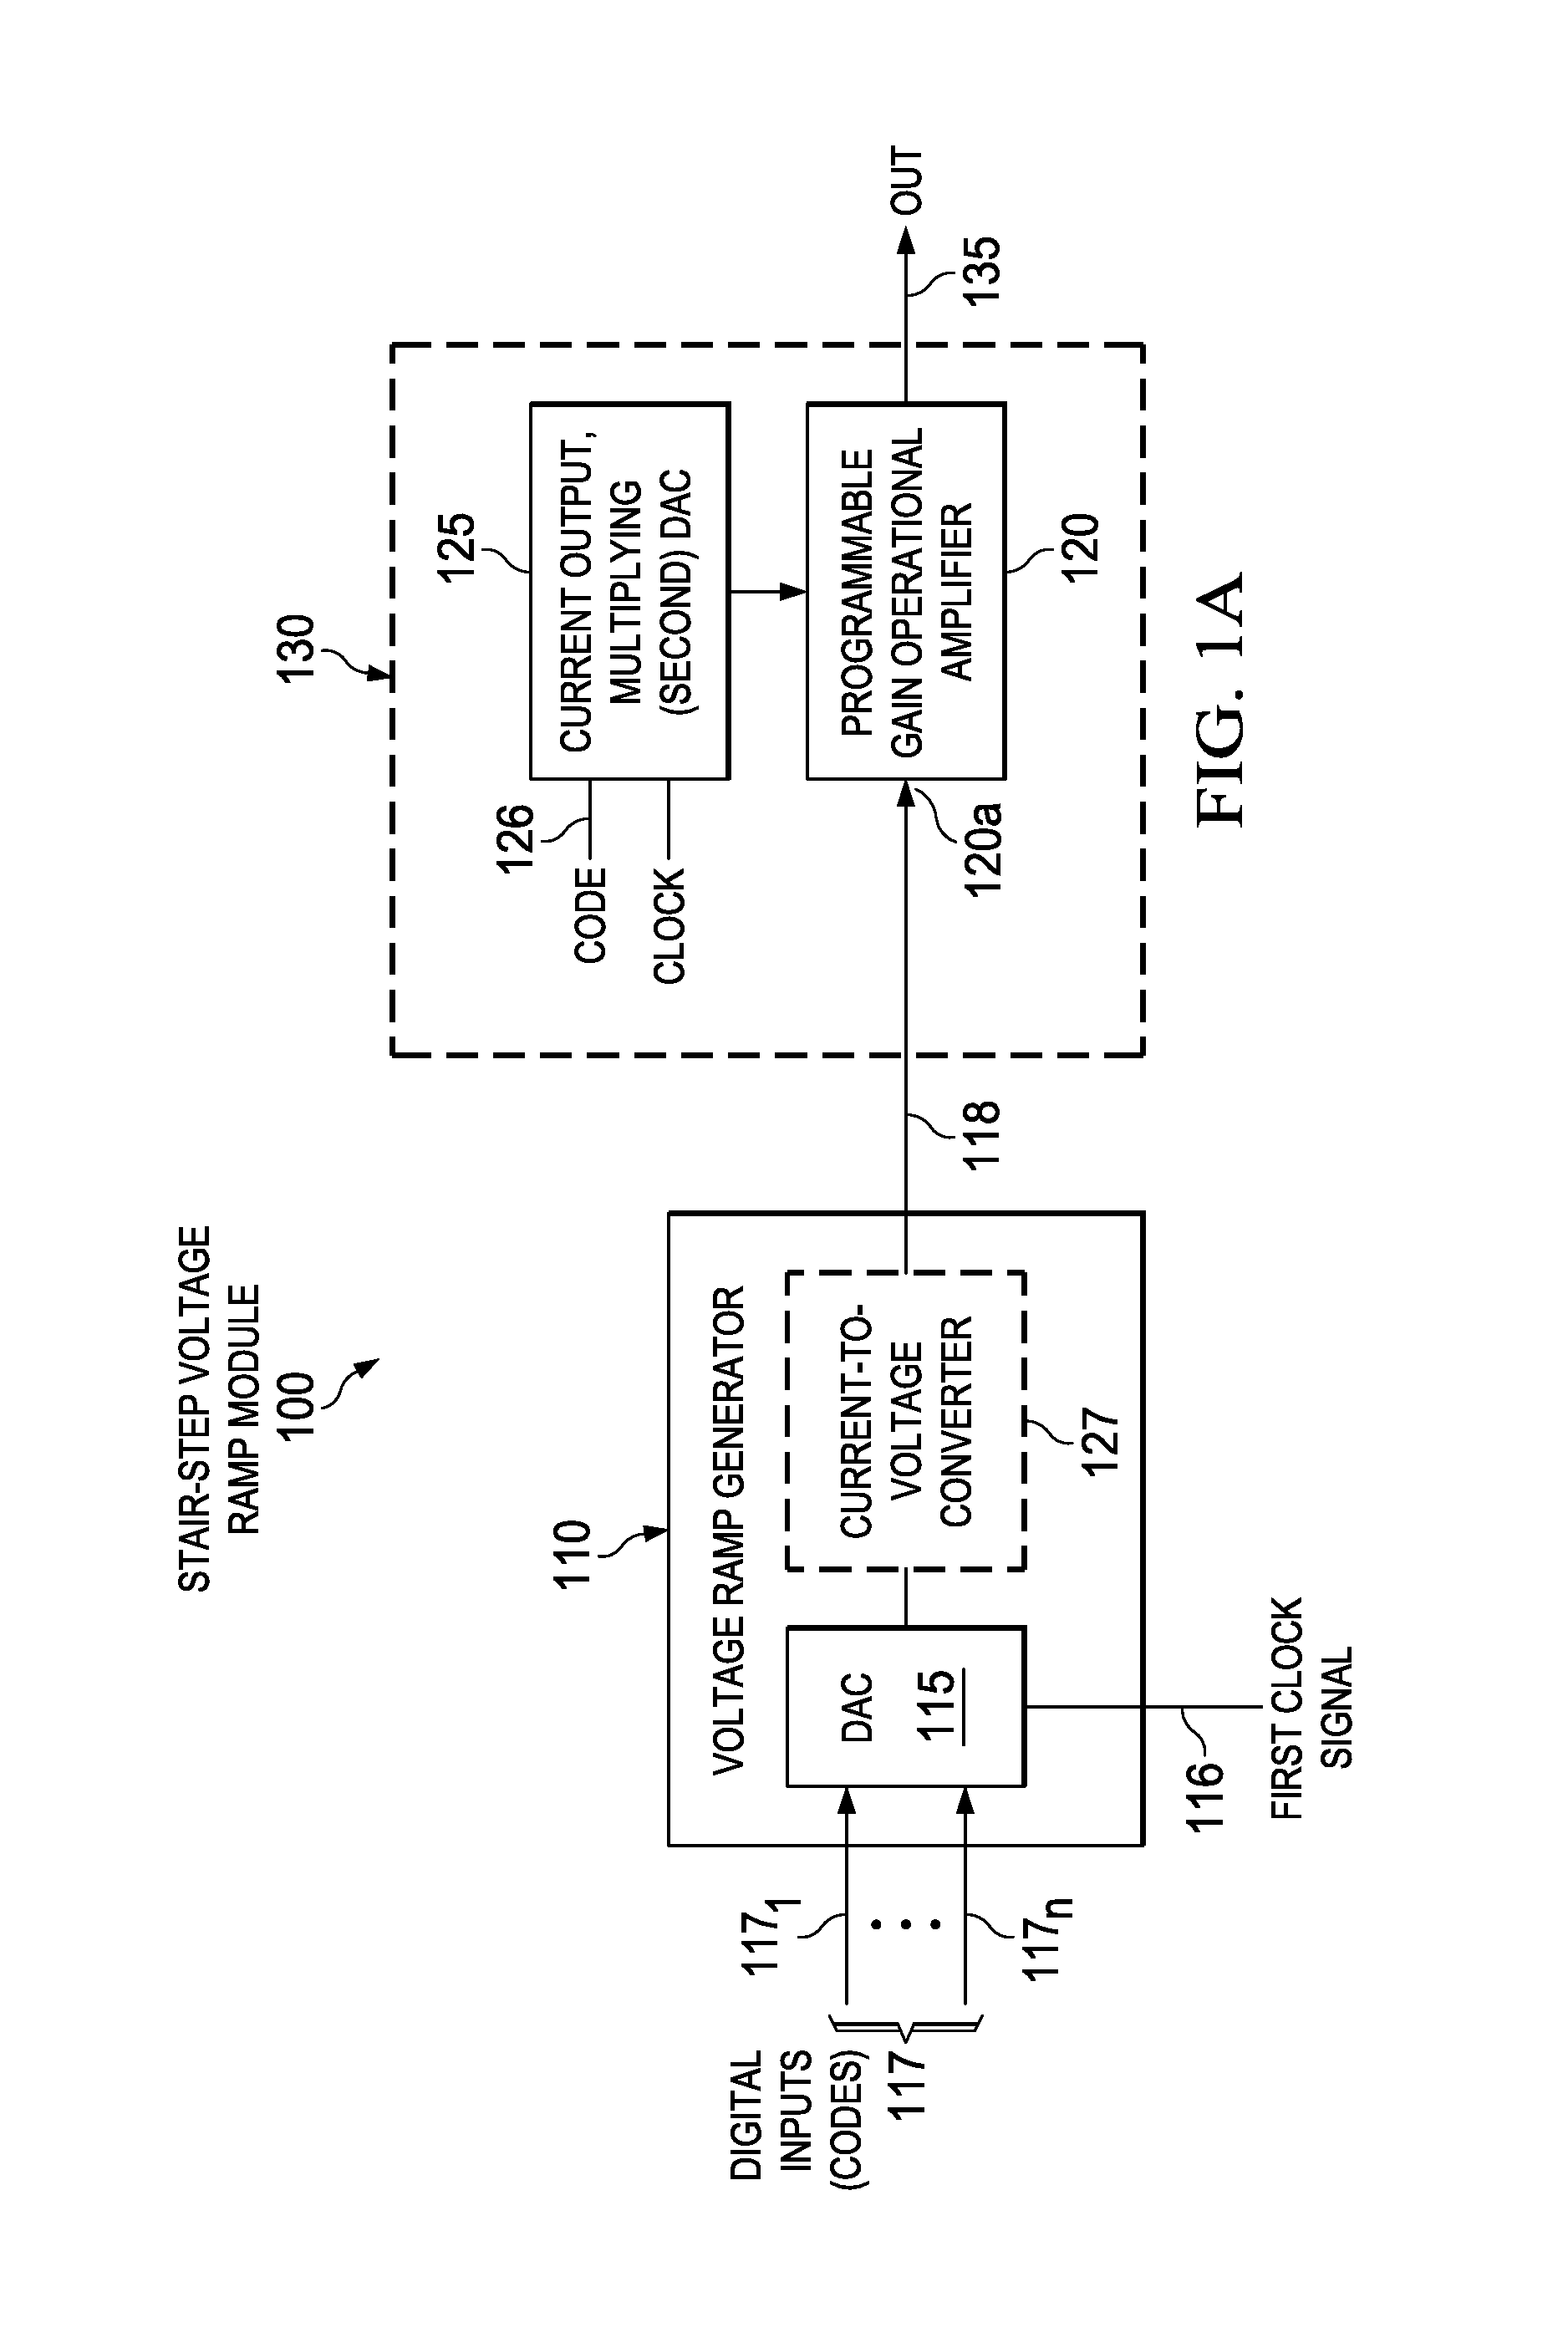 patent us8723711 - stair-step voltage ramp module including programmable gain amplifier